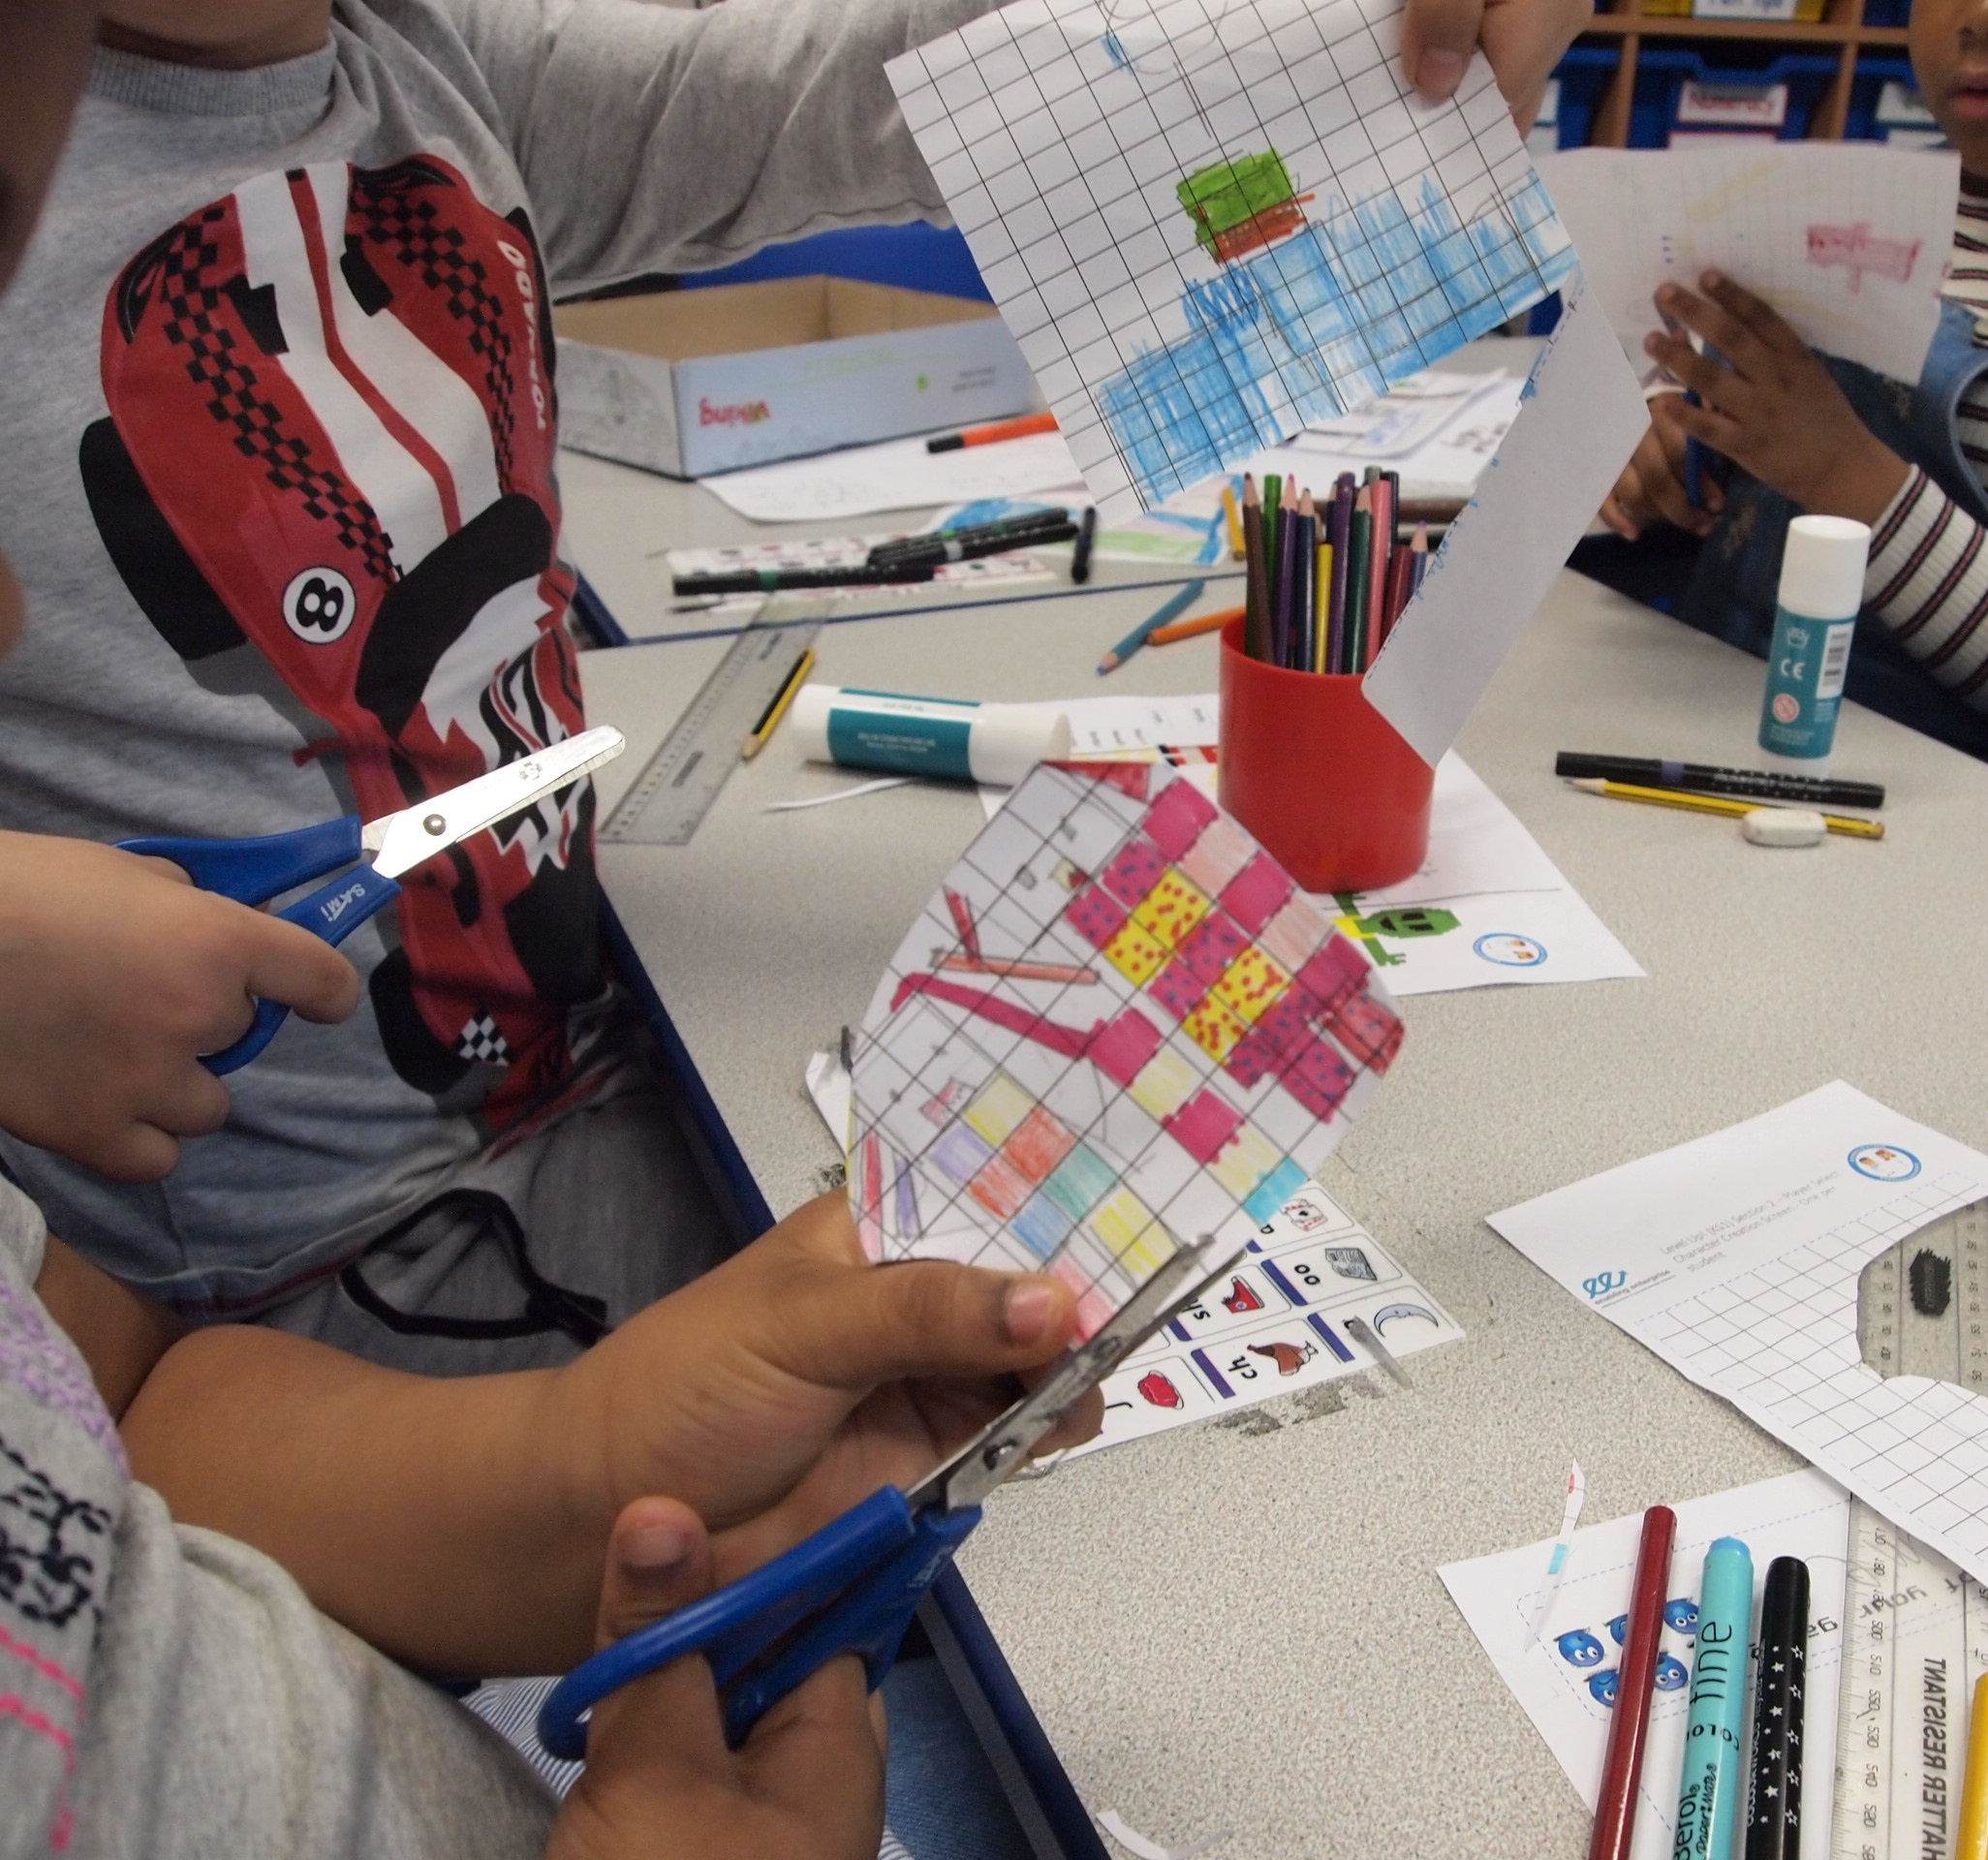 Creativity and Teamwork in action as the games designers put together their characters.